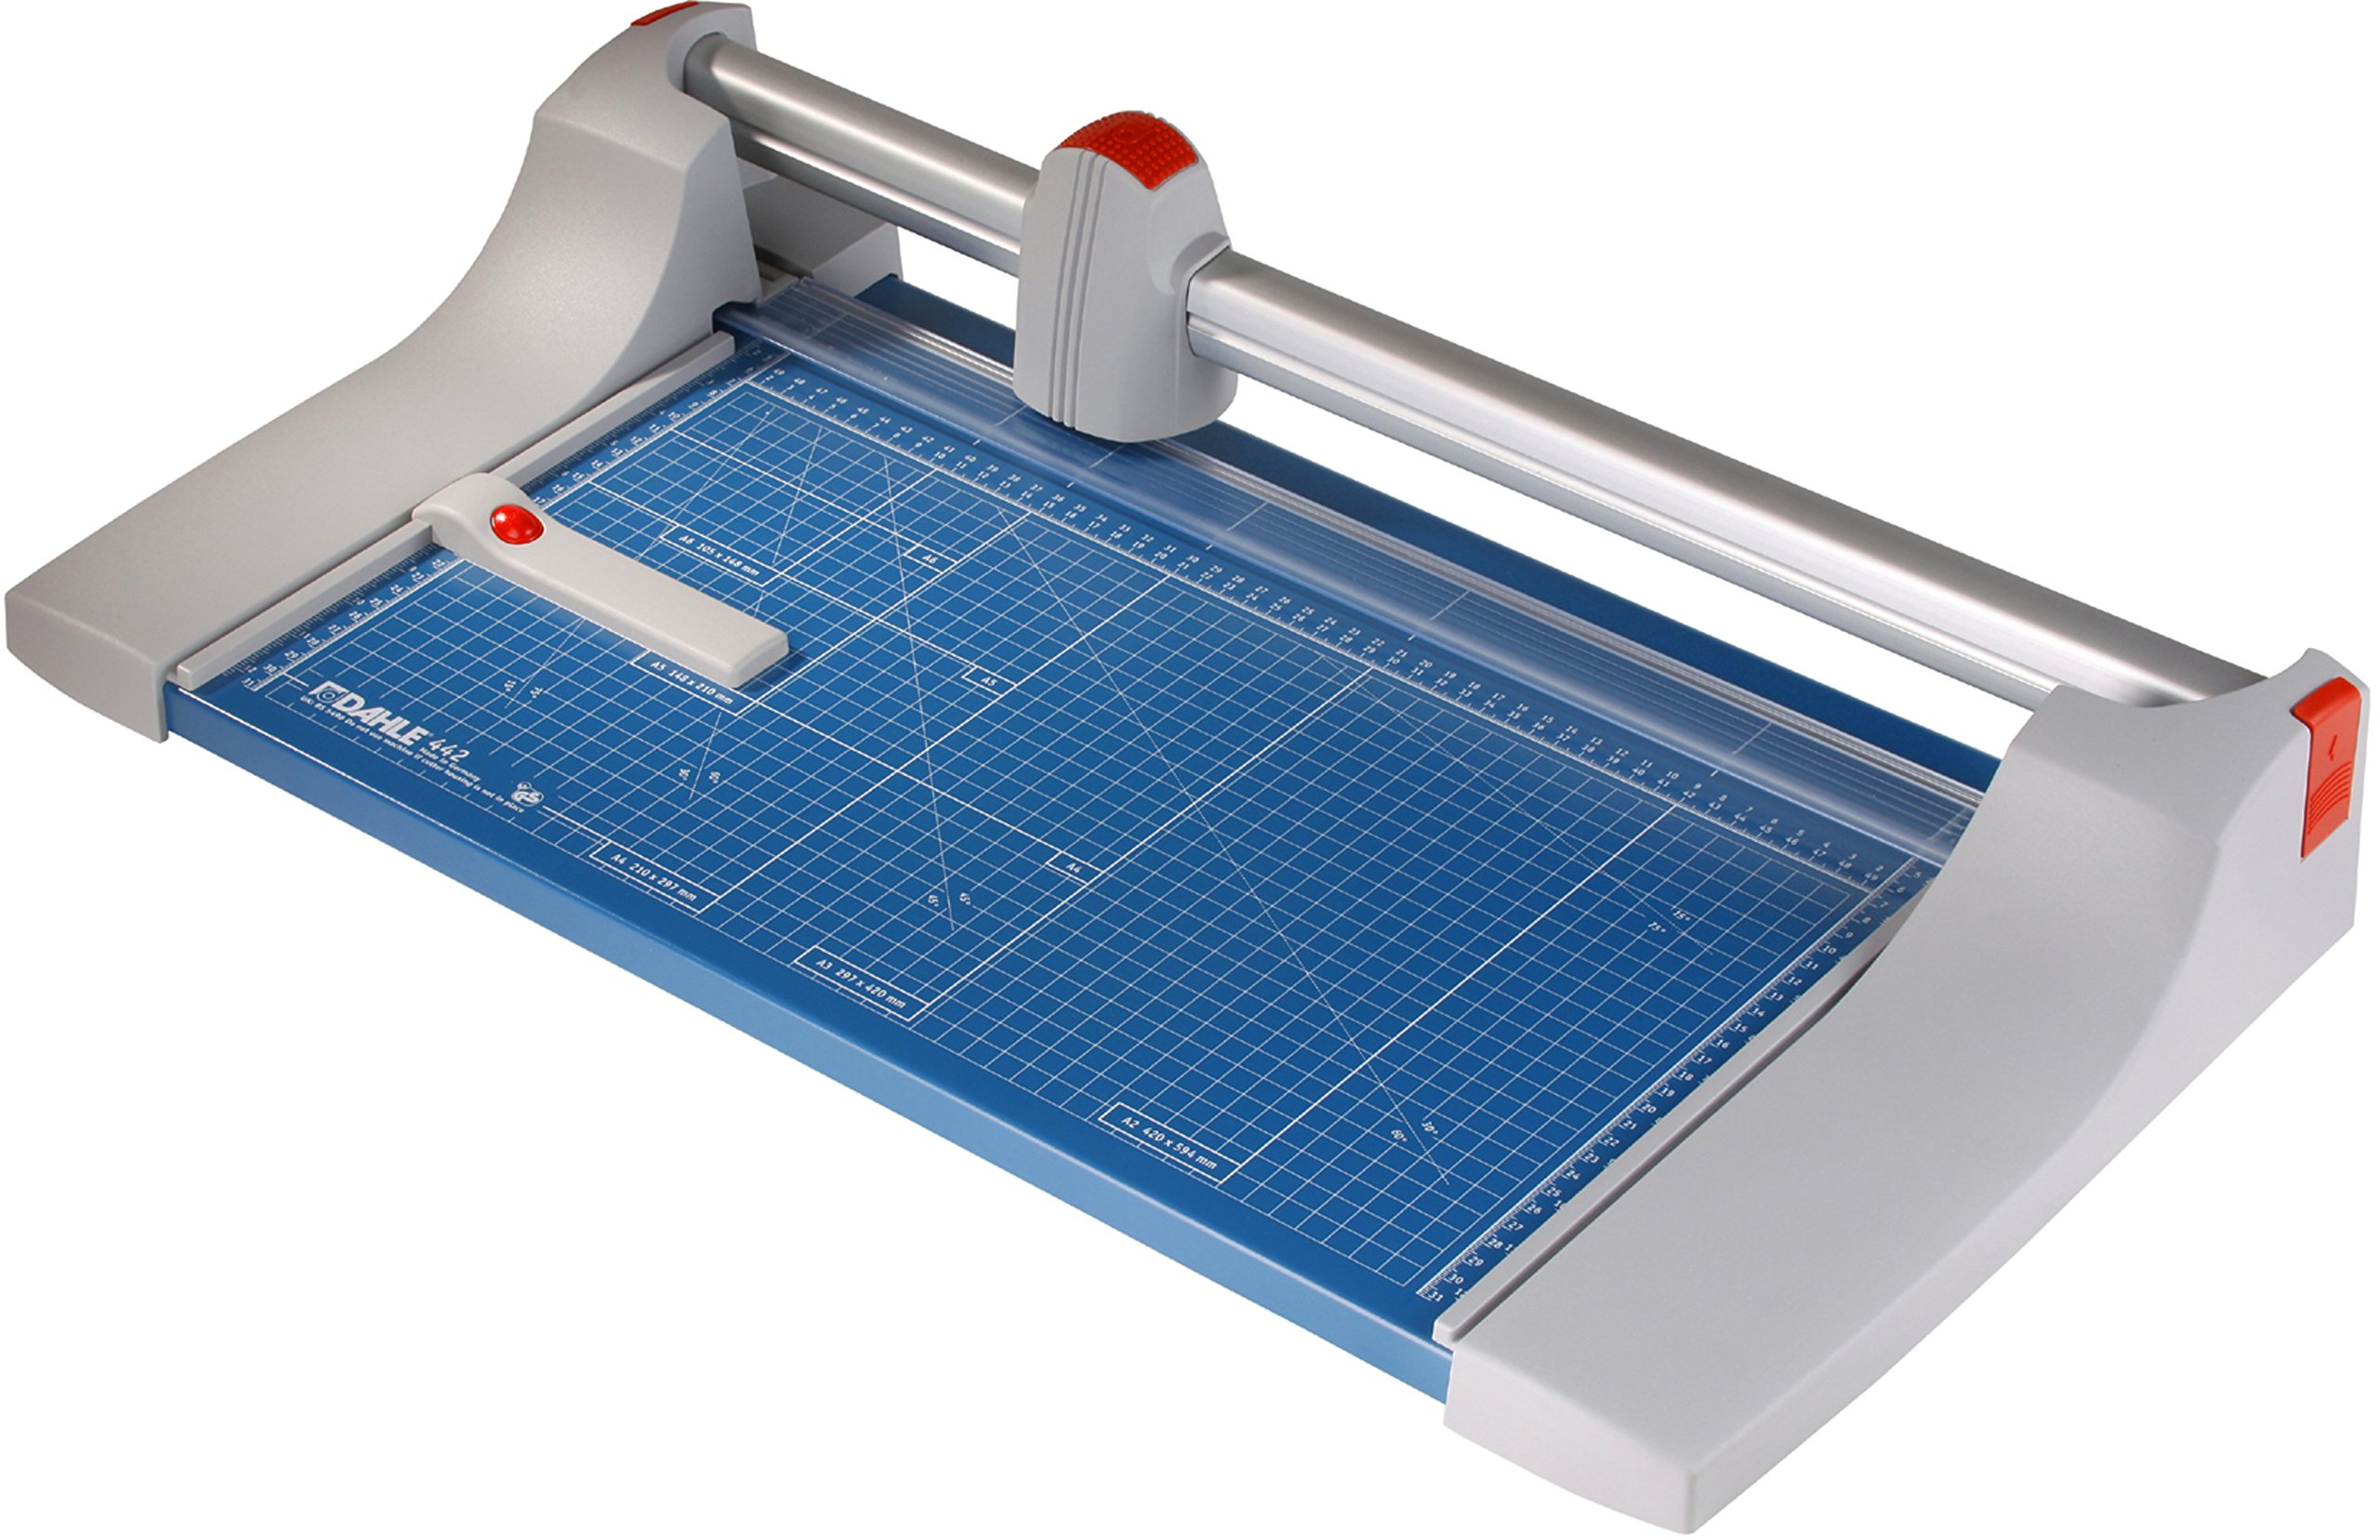 Dahle 442 Premium Rolling Trimmer, 20'' Cut Length, 30 Sheet Capacity, Self-Sharpening, Automatic Clamp, German Engineered Paper Cutter